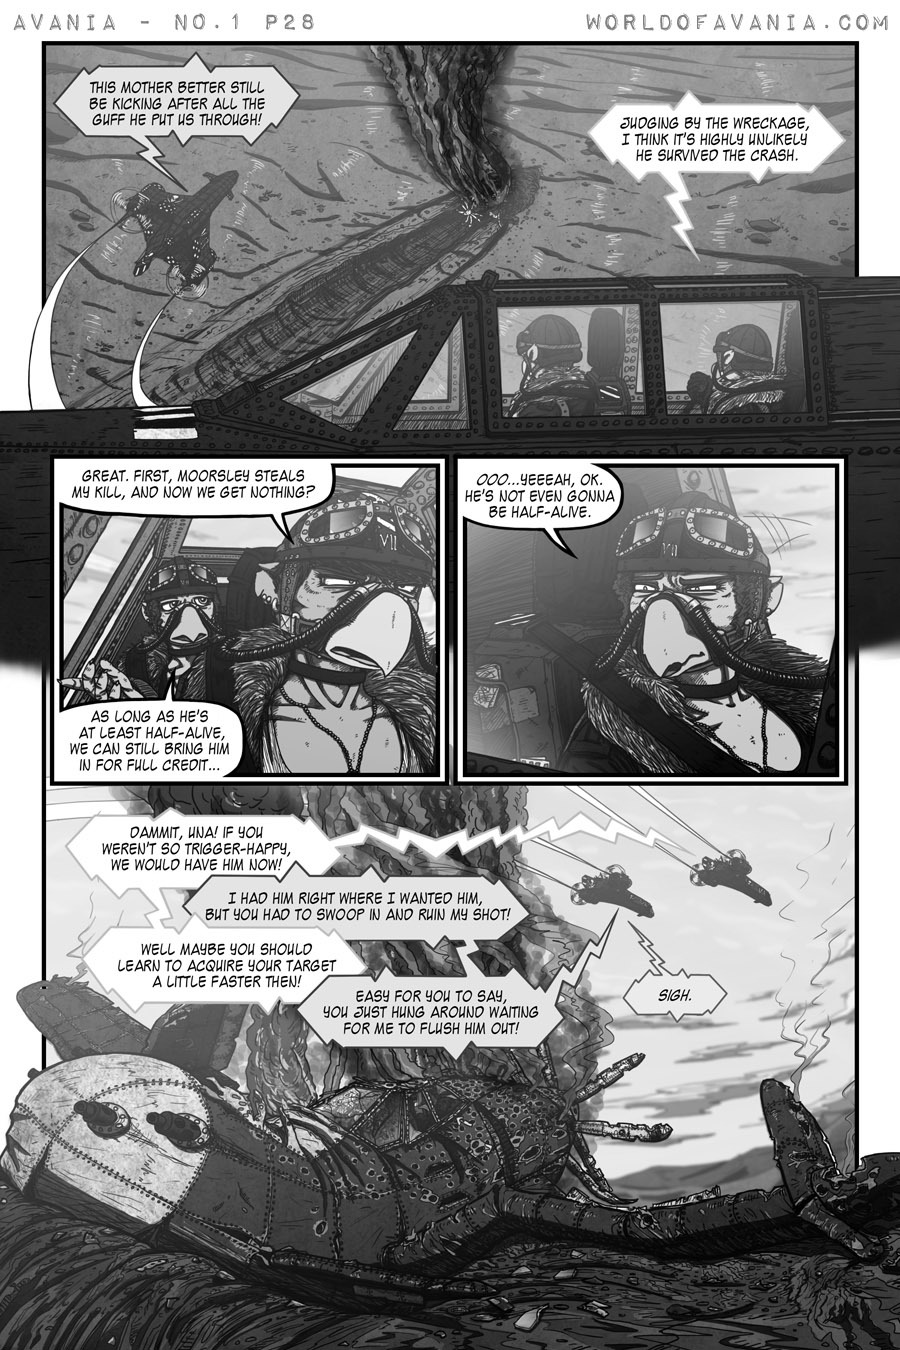 Avania Comic - Issue No.1, Page 28